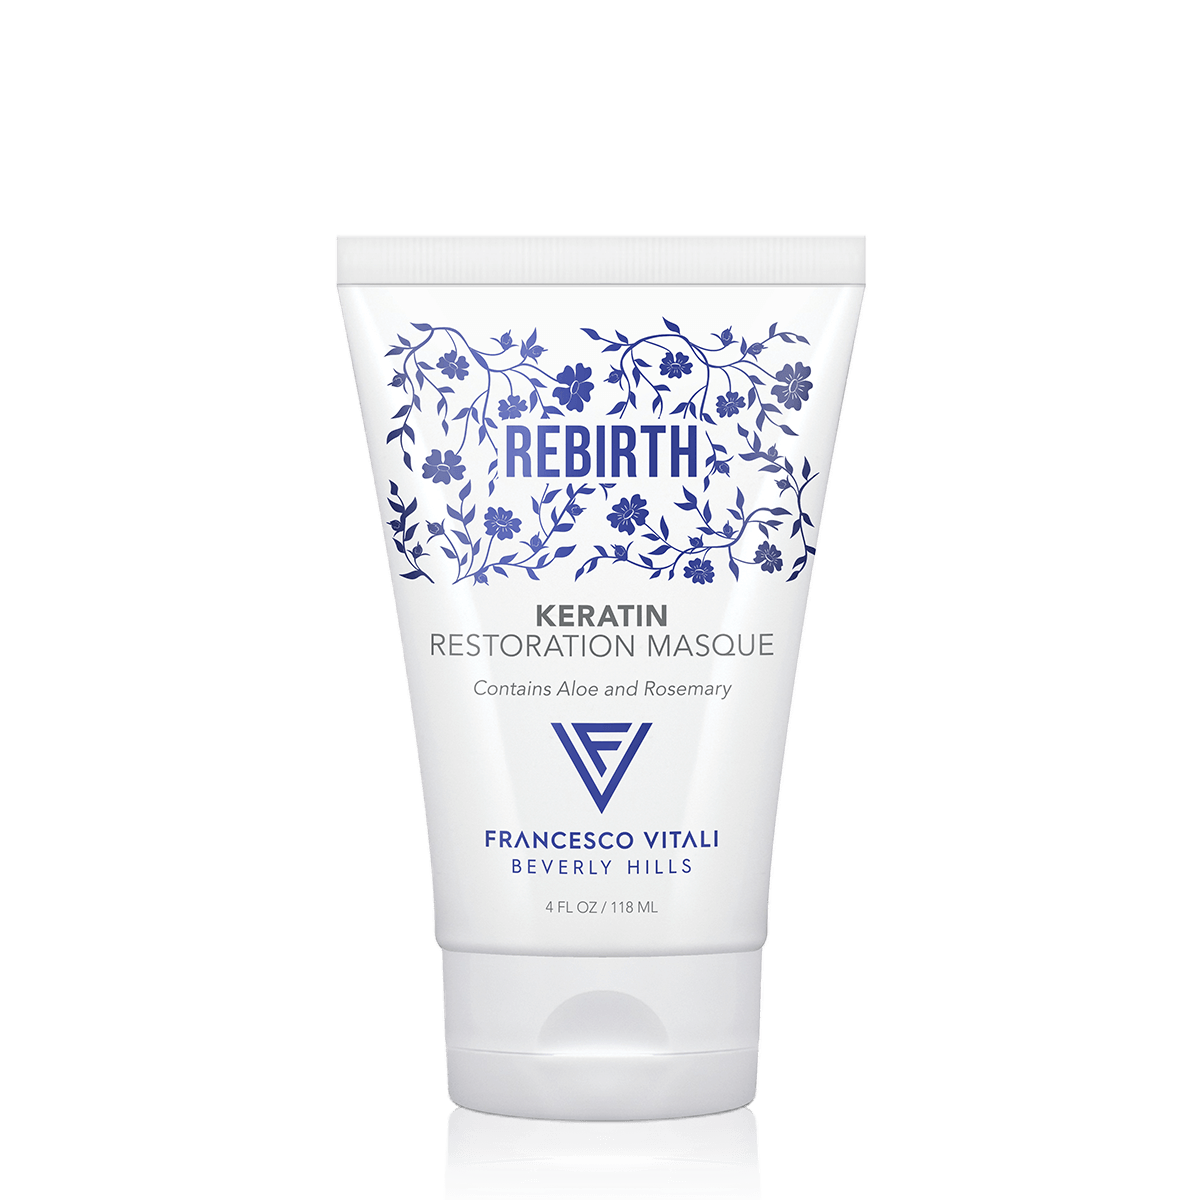 Rebirth Keratin Restoration Masque